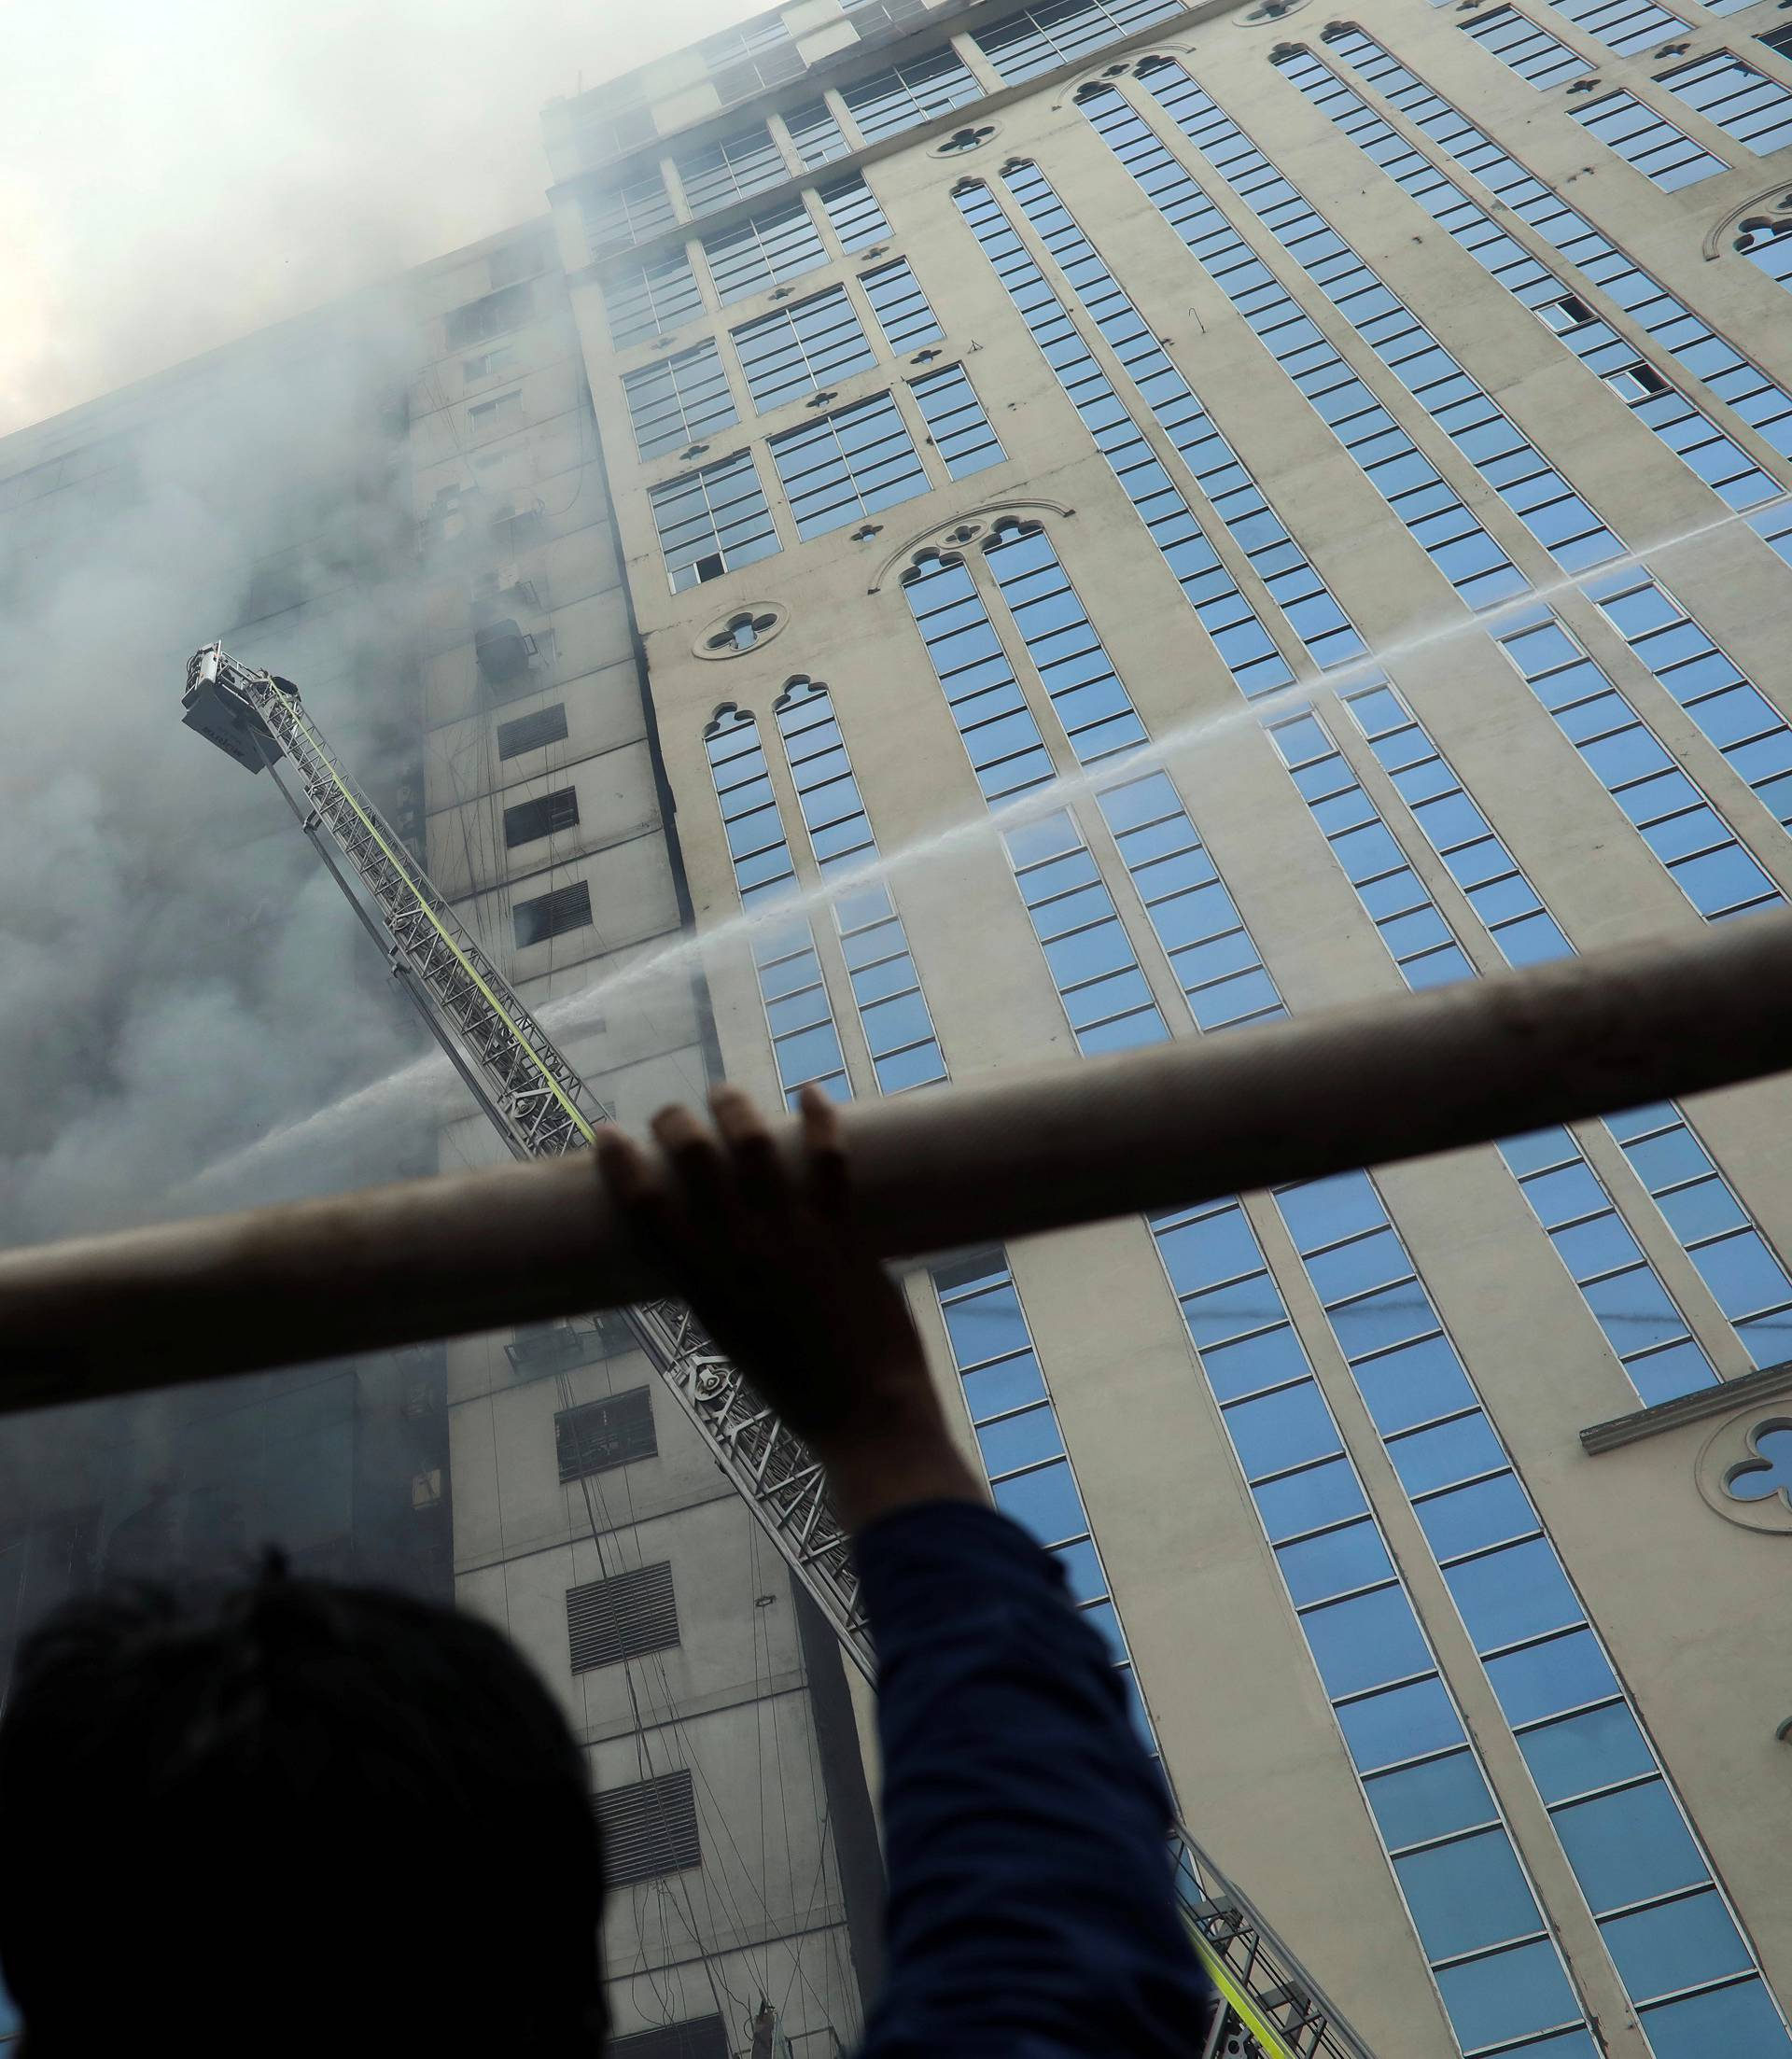 A person looks on as firefighters attempt to extinguish a fire at a multi-storey commercial building in Dhaka